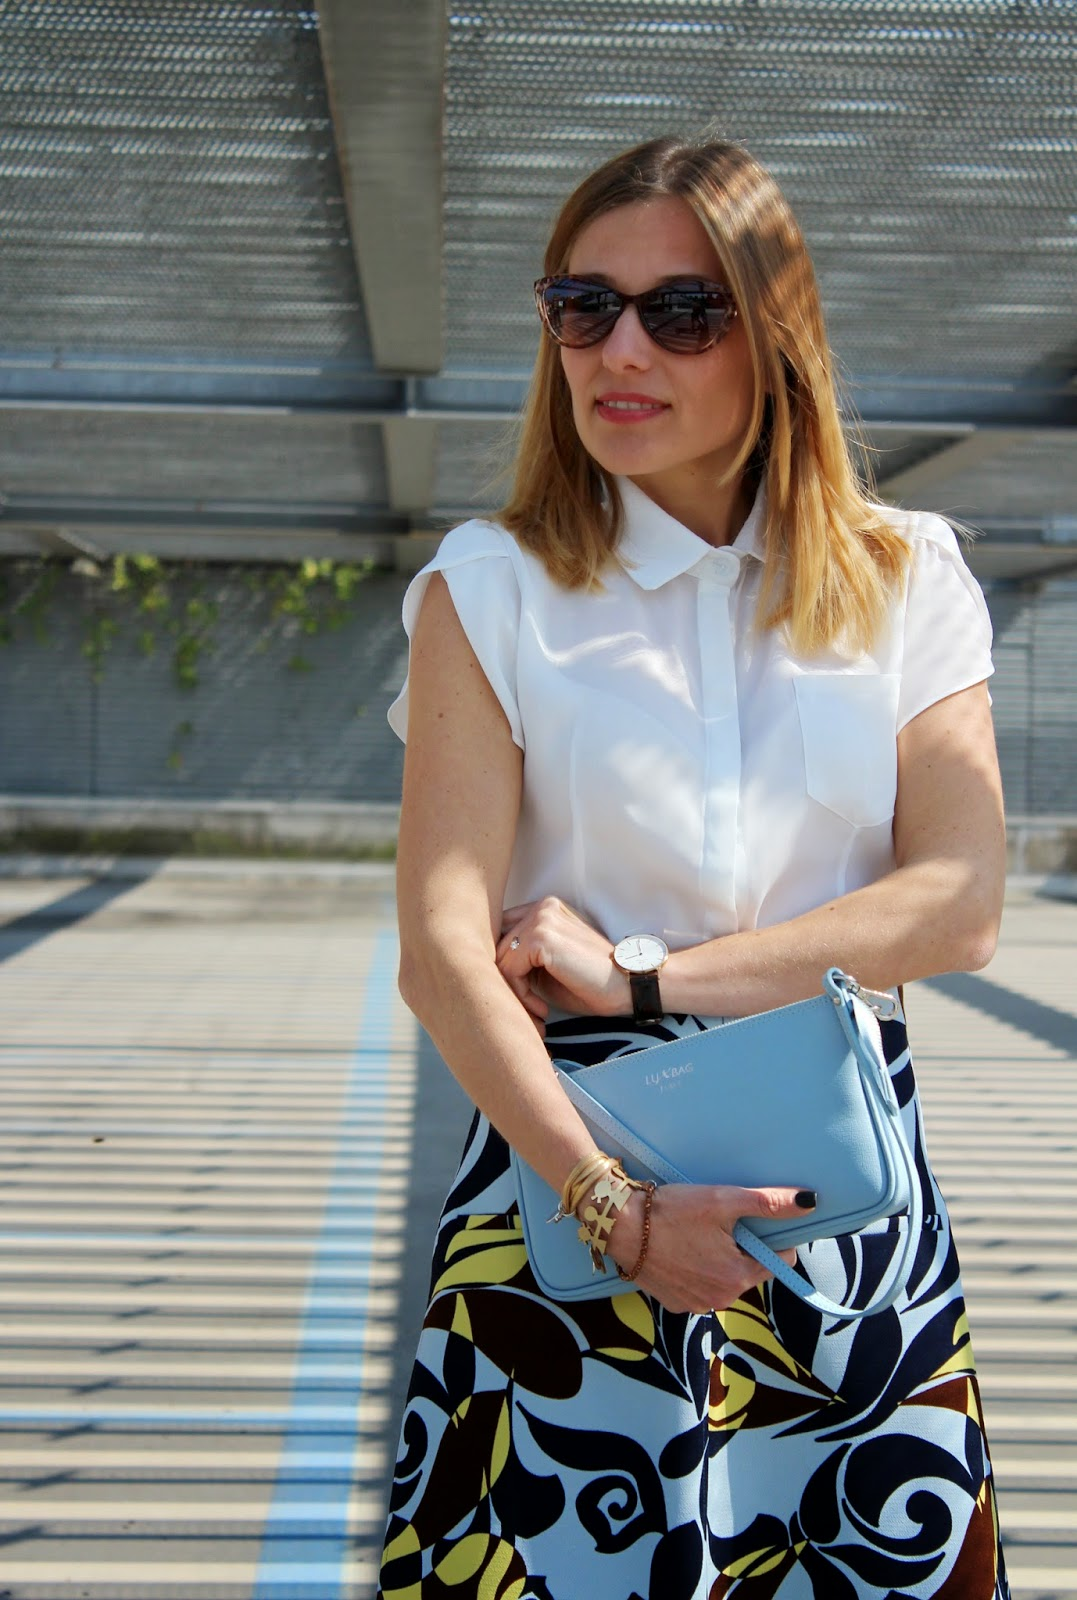 Eniwhere Fashion - Zara Skirt - Seventies - Lux Bag - Caco Design